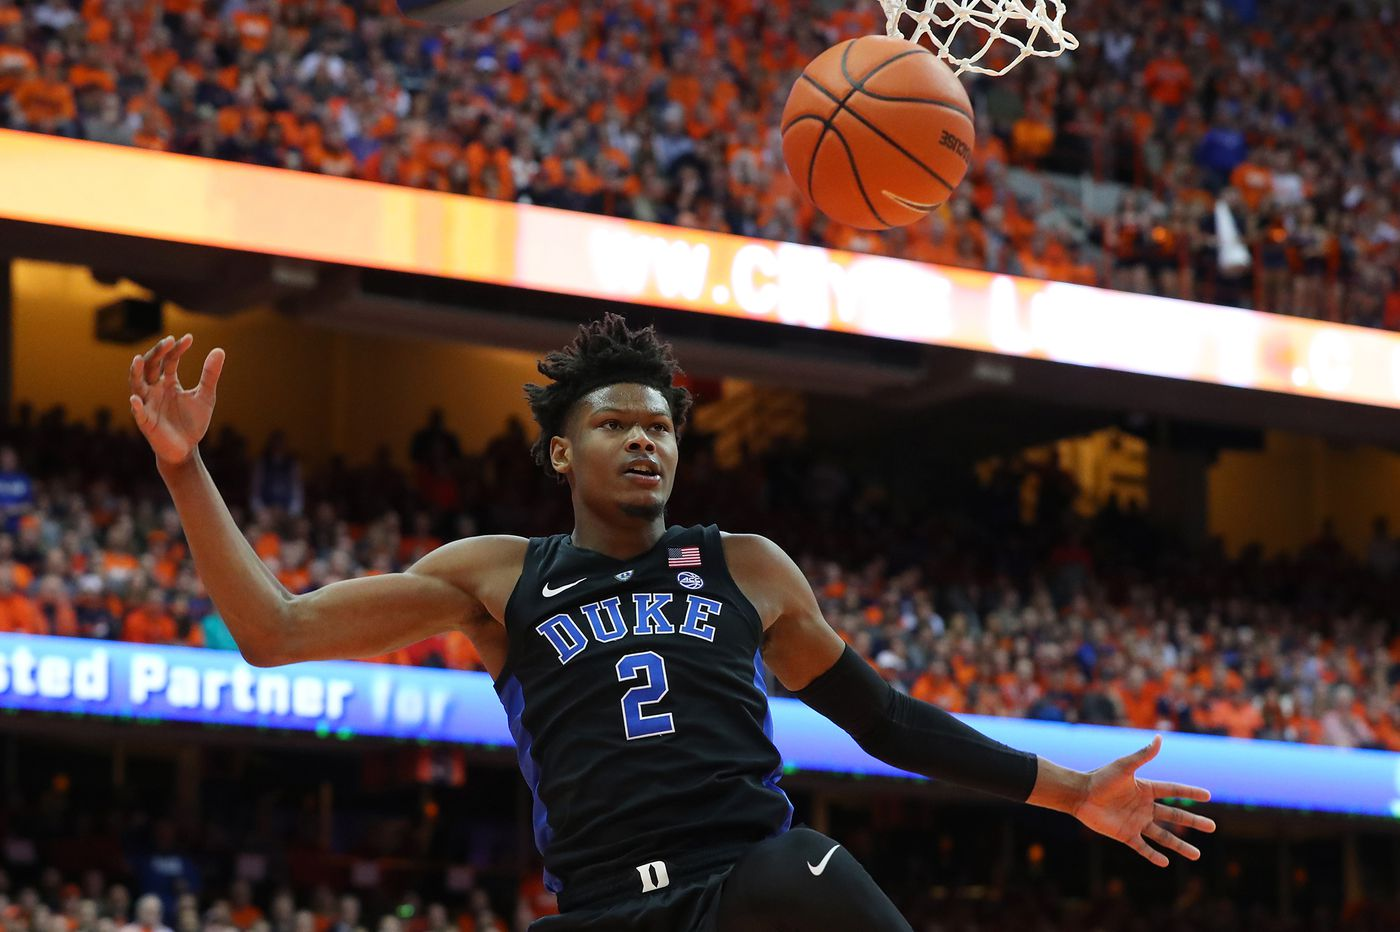 Cam Reddish will go high in NBA draft, even if some baggage comes with him | Mike Jensen